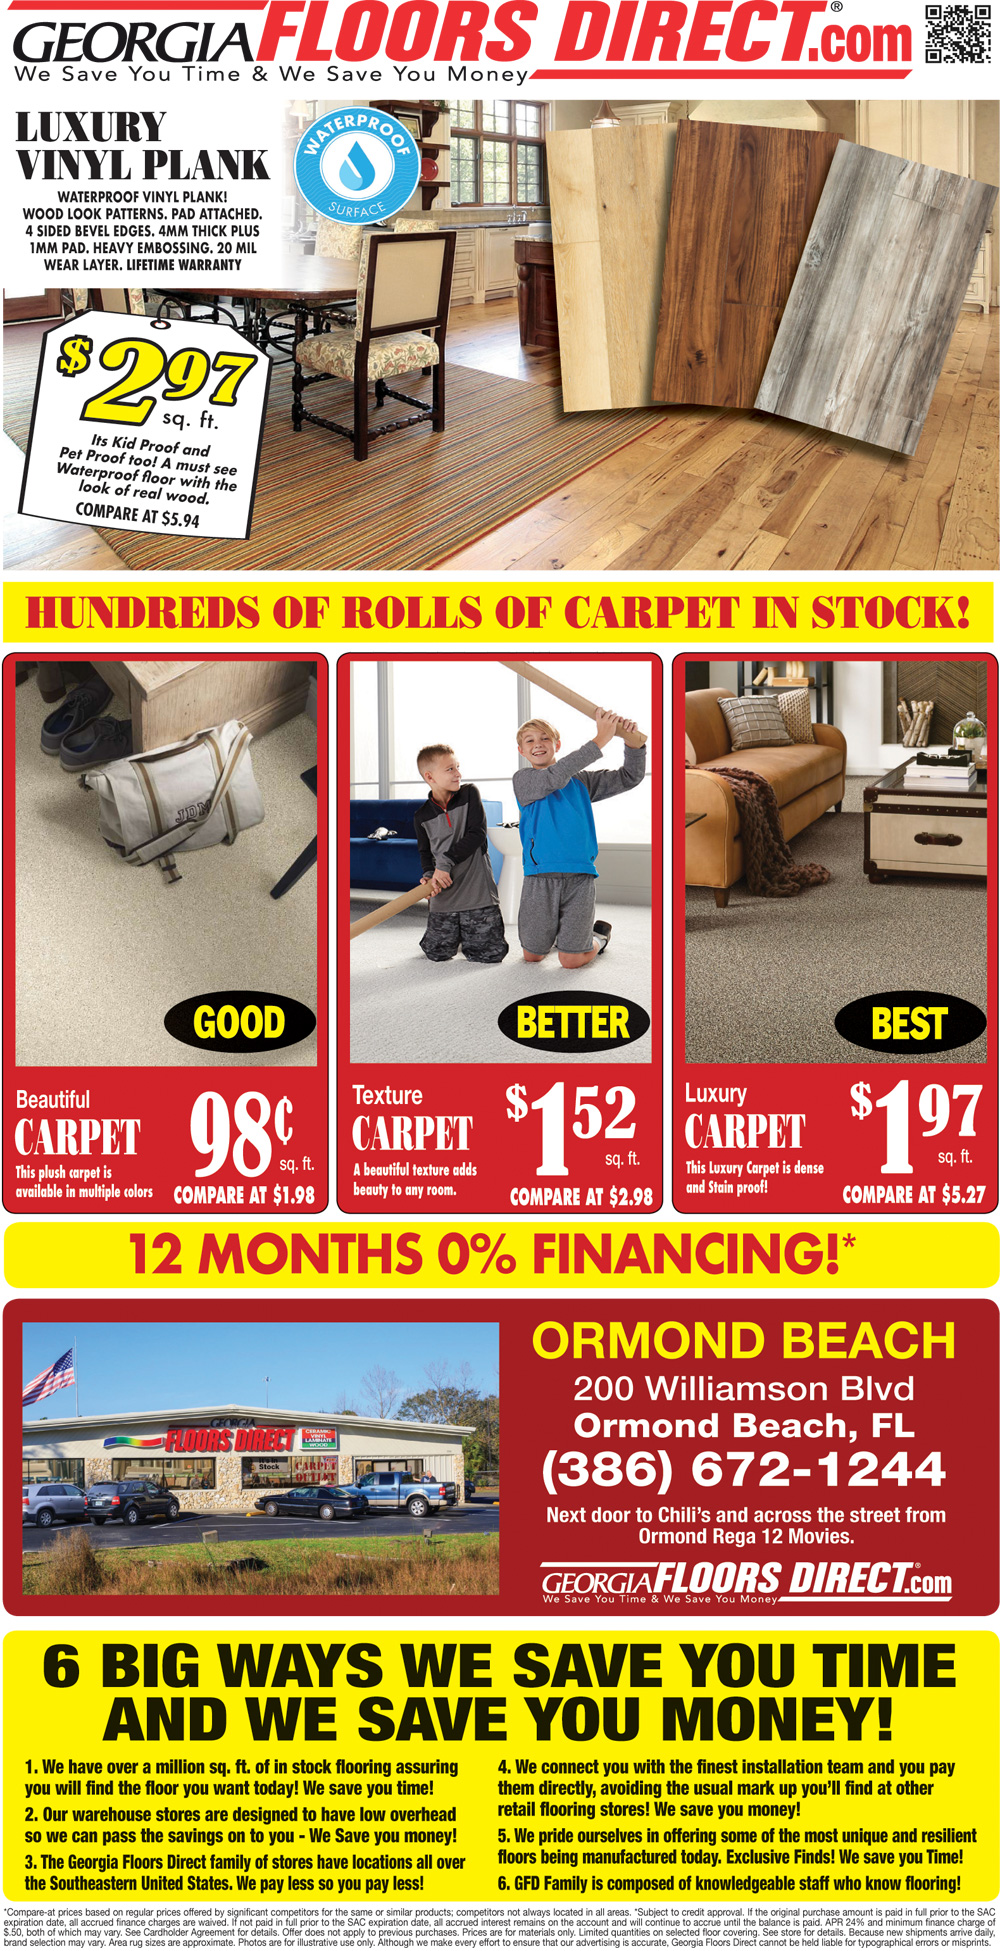 Specials at our Ormond Beach store